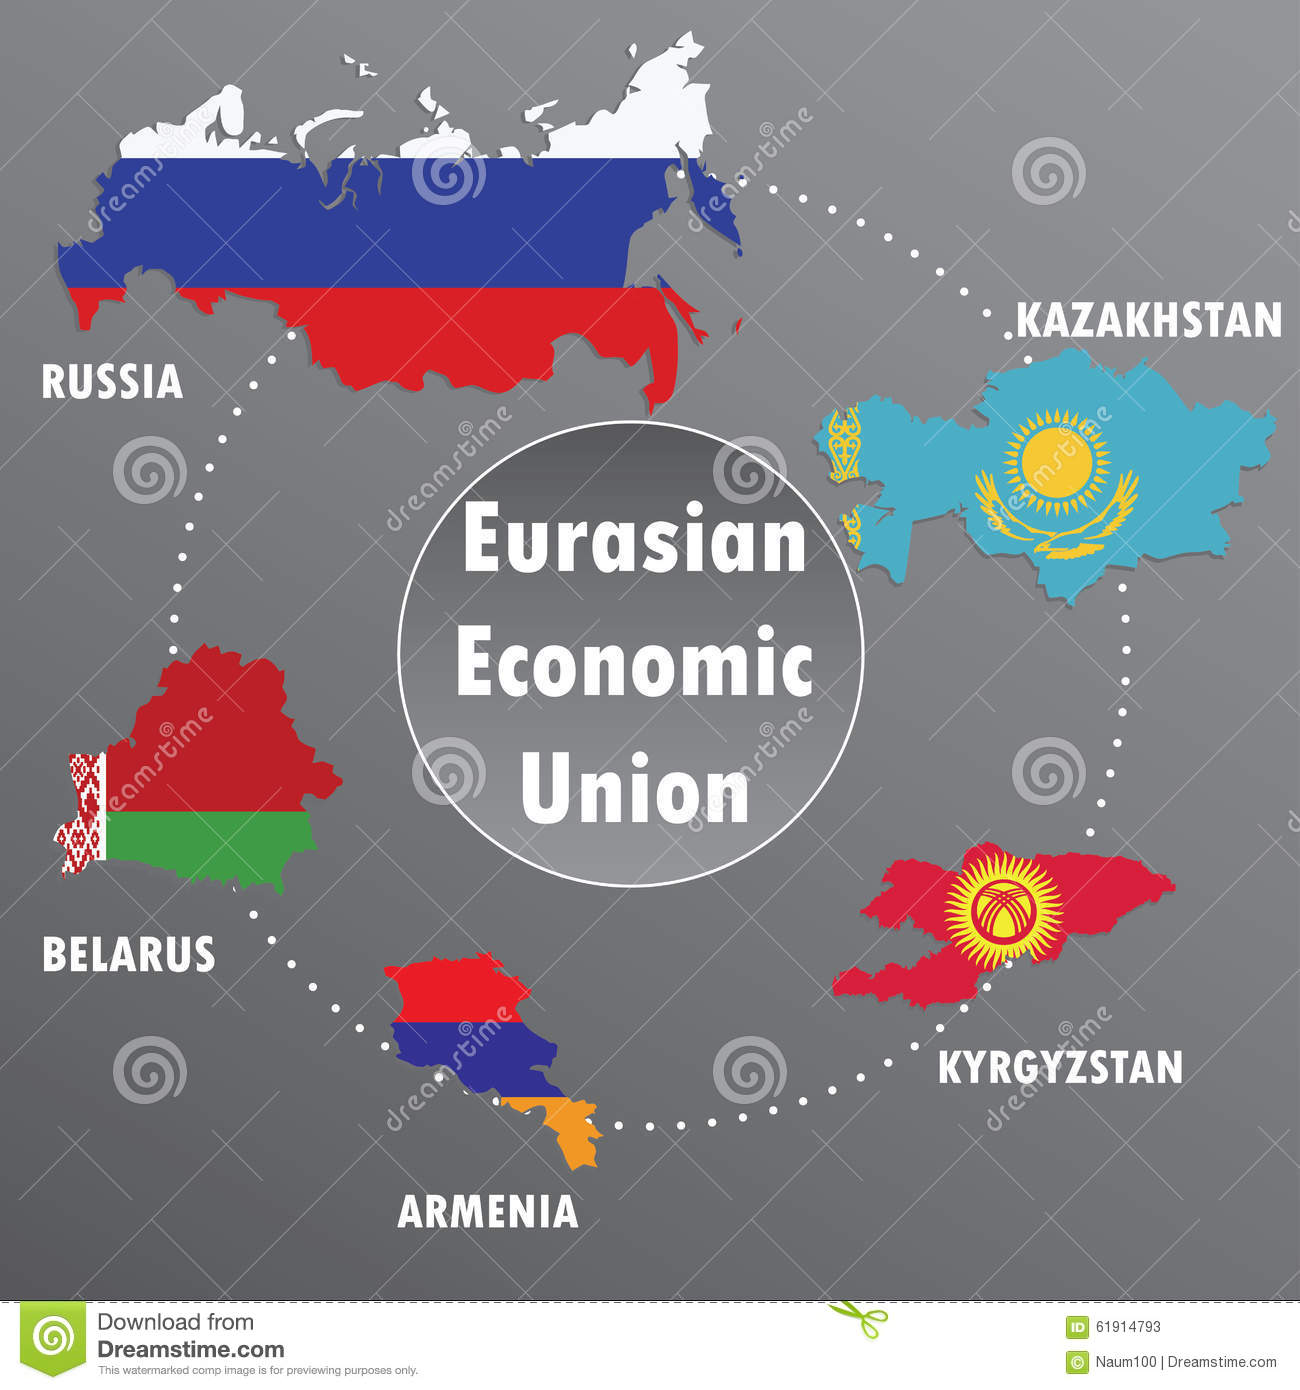 eurasian economic community From the cis to the eurasian economic community, to the customs union, the eurasian economic space, and then the eeu, russia, through the tactics of downsizing, integration of main bodies, and re-enlargement, has successfully promoted eurasian economic integration, bringing it to a new stage of development.